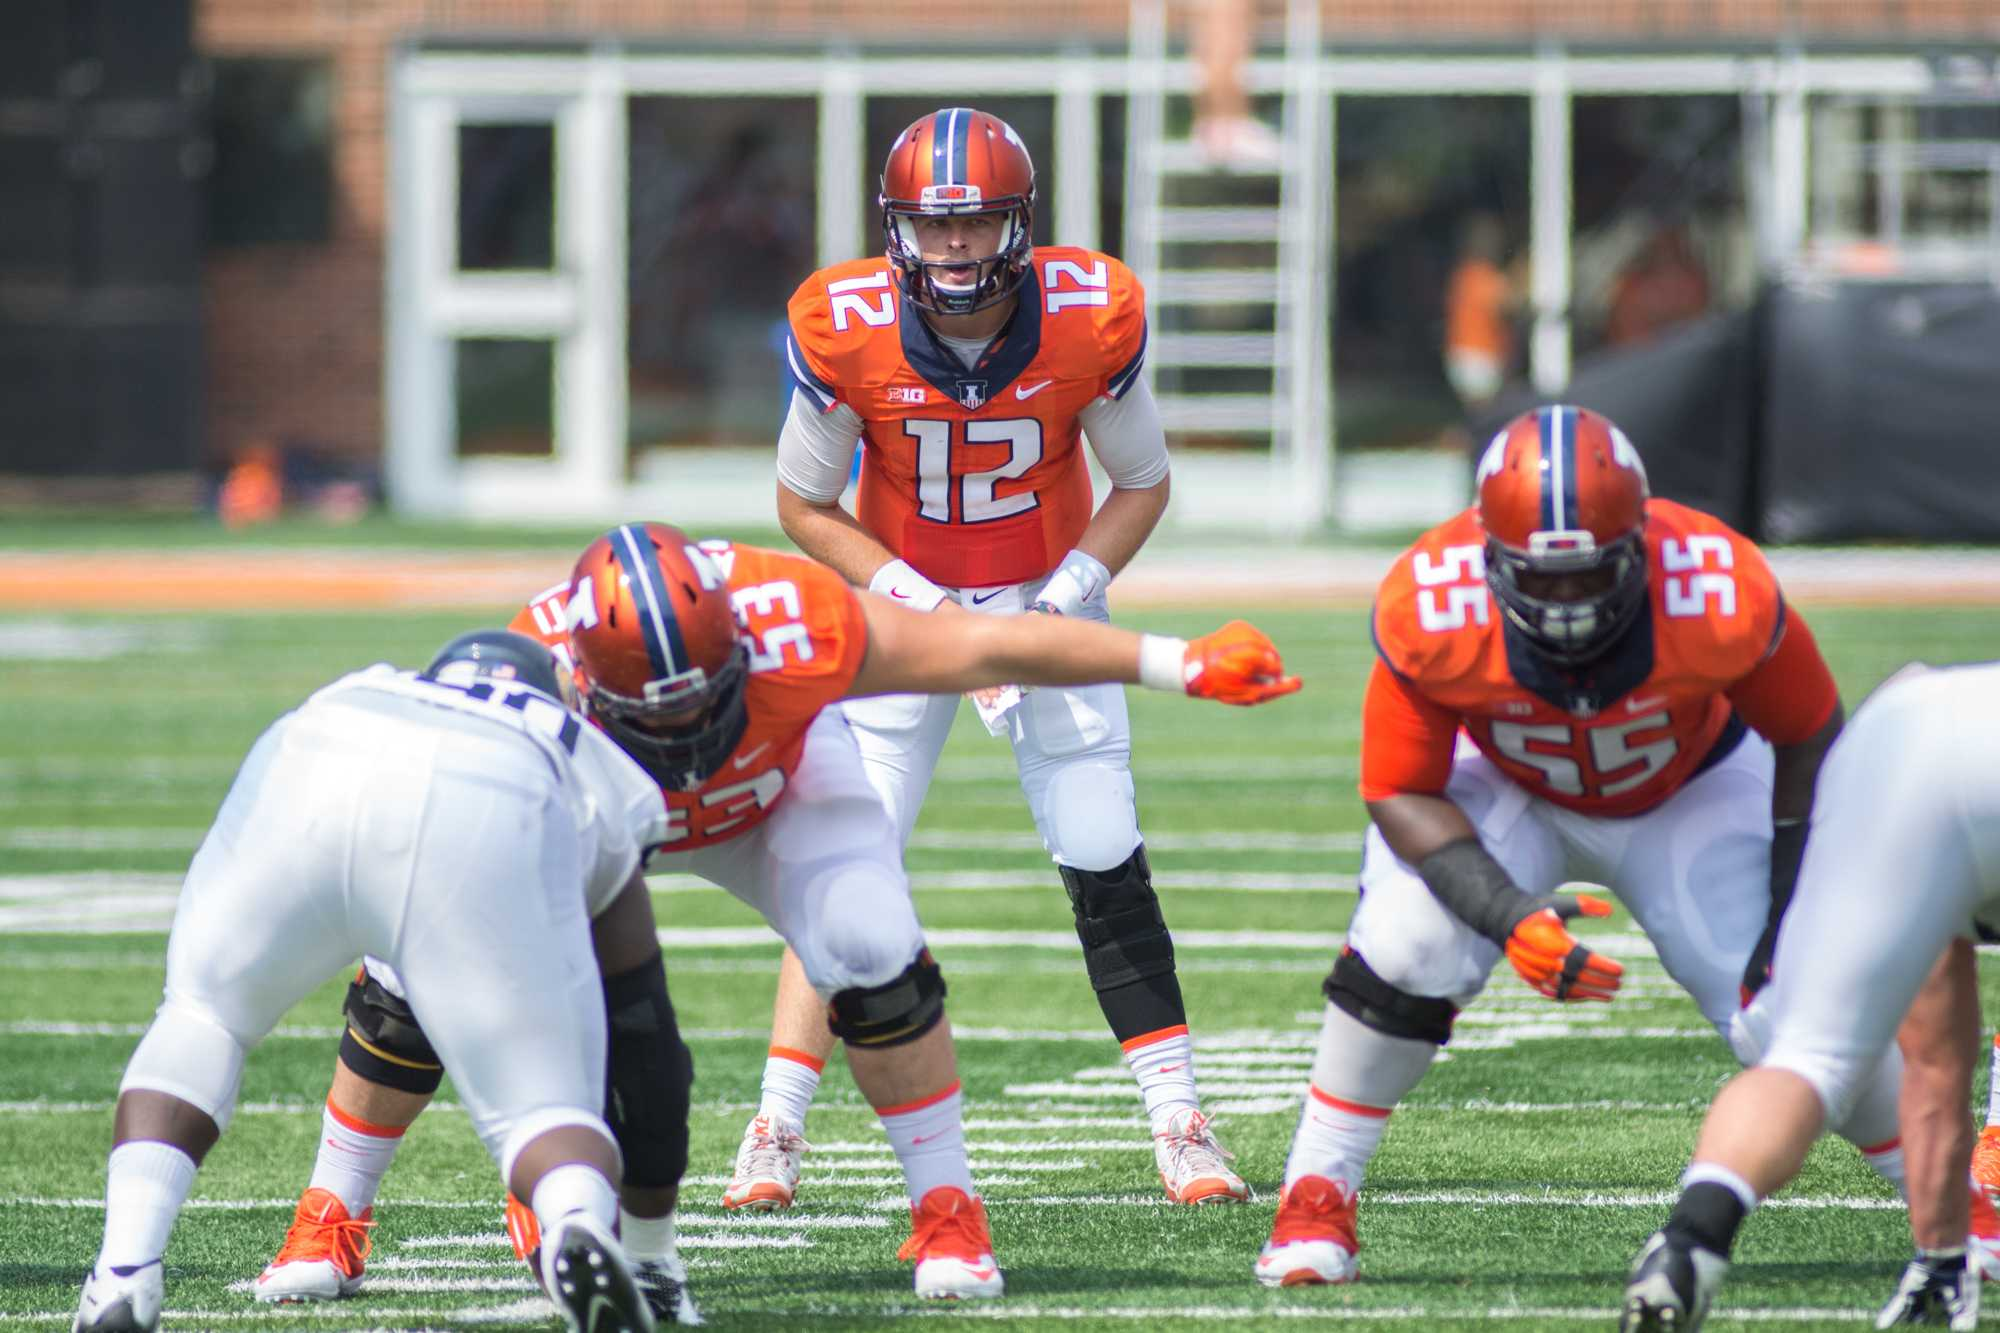 Wes Lunt prepares for a snap during Illinois' 52-3 victory over Kent State in their season-opener at Memorial Stadium on Saturday, September 5.